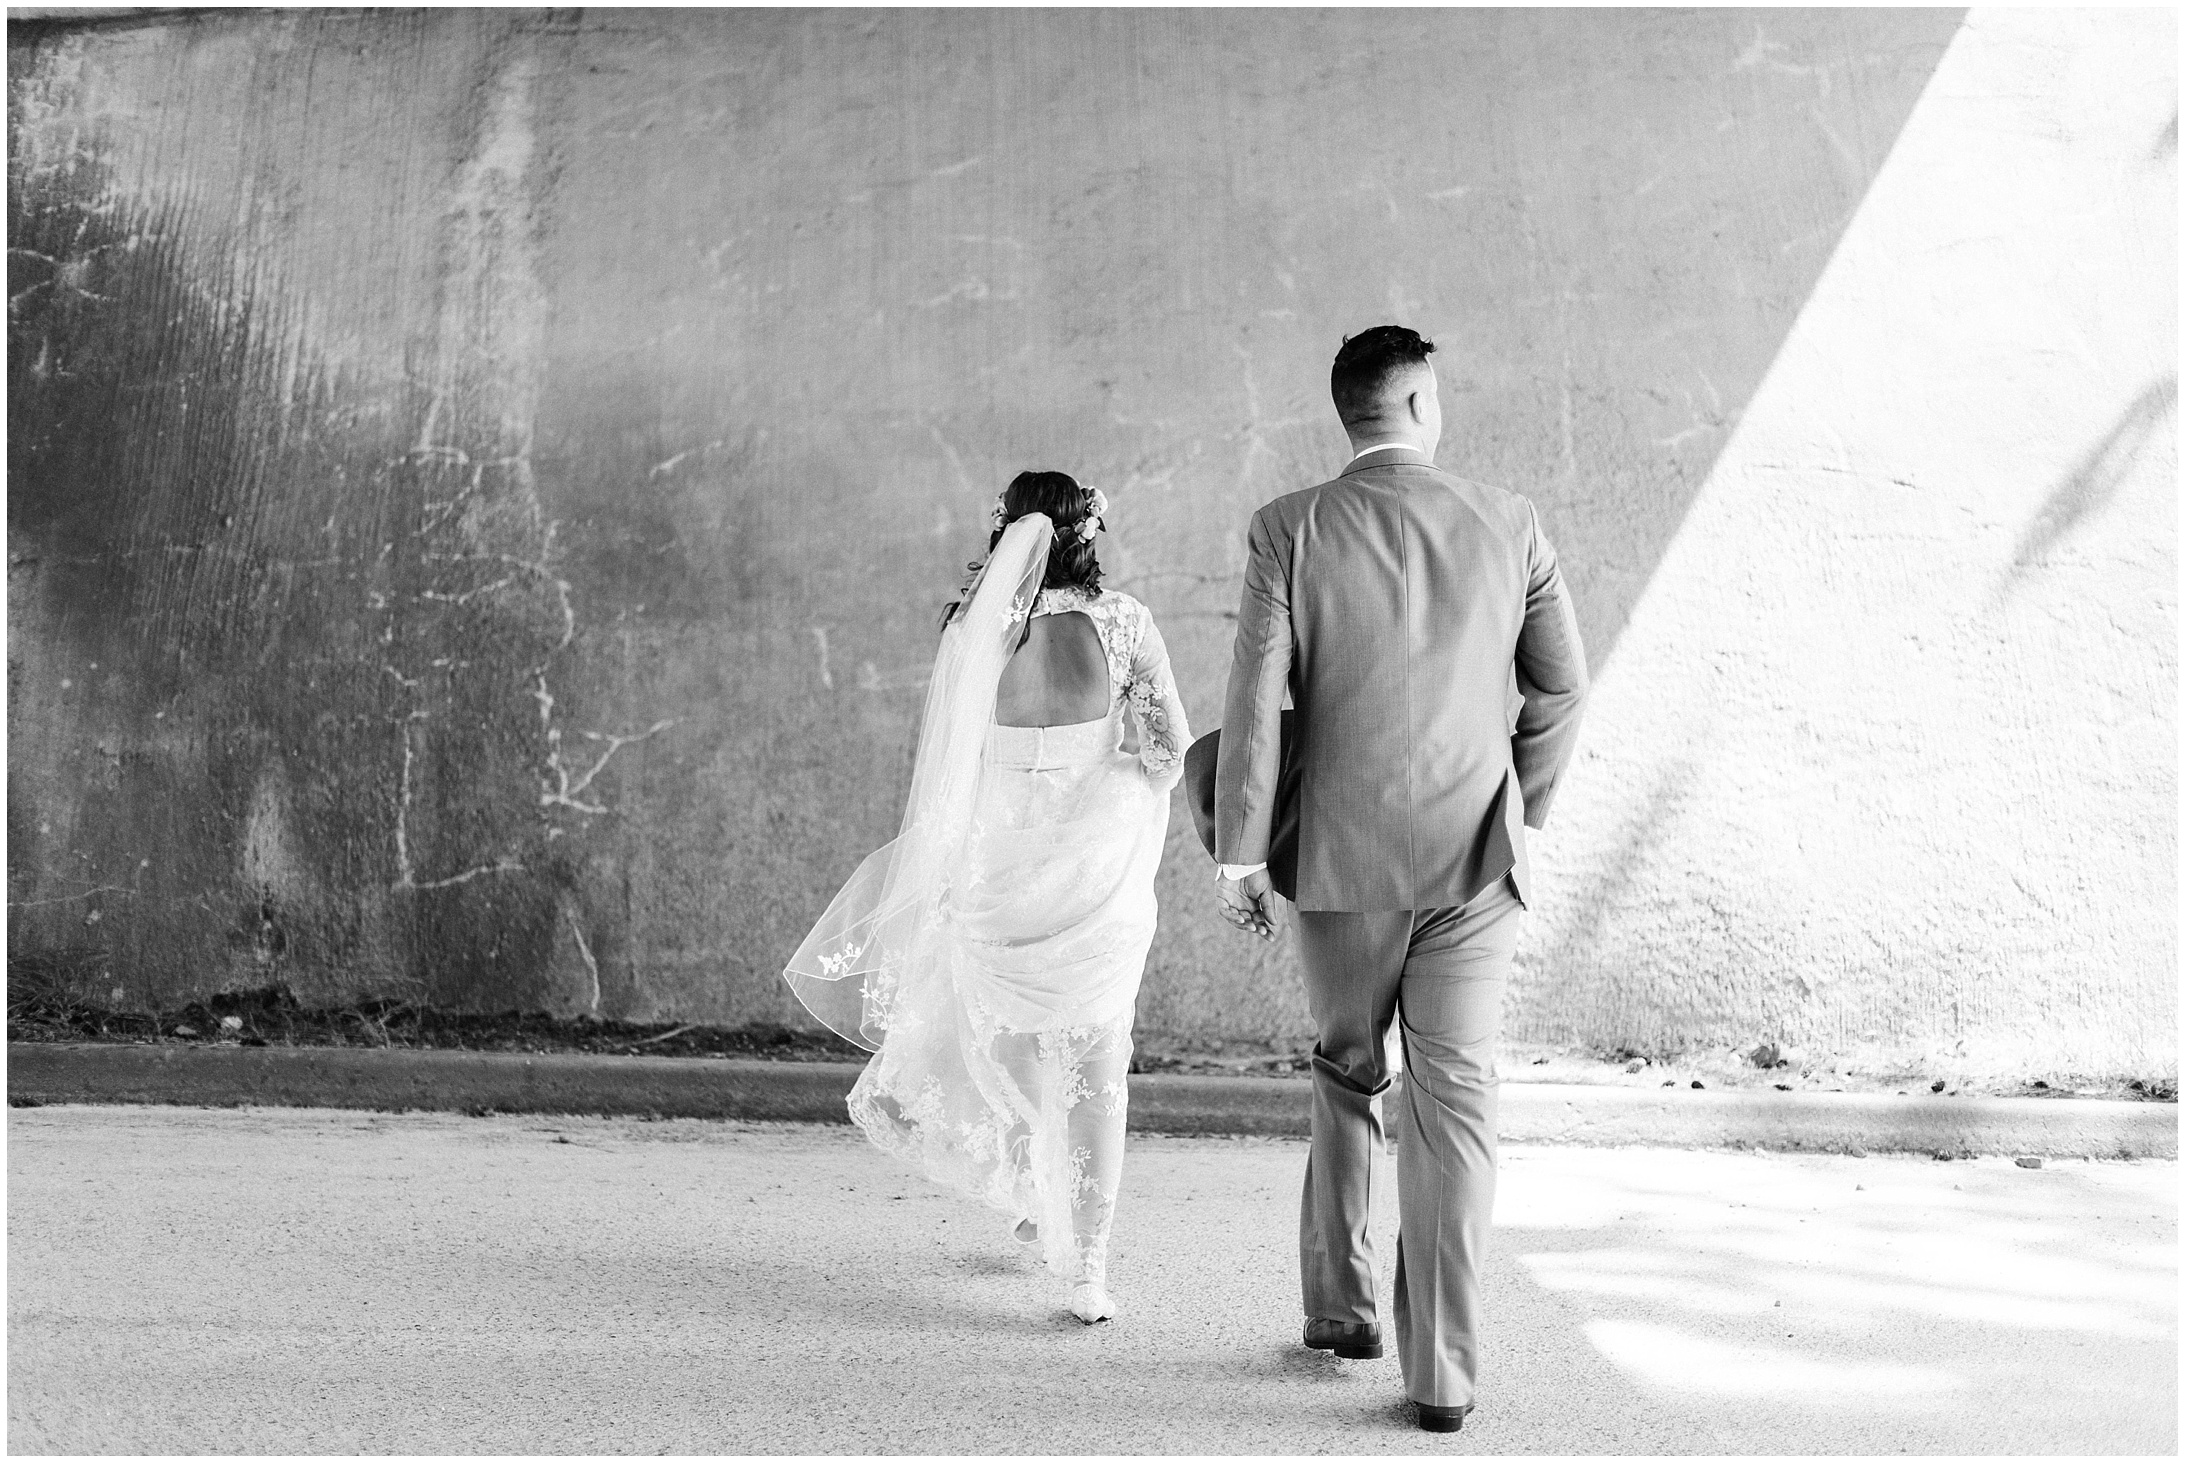 Black and white photo of a bride and groom in an underpass